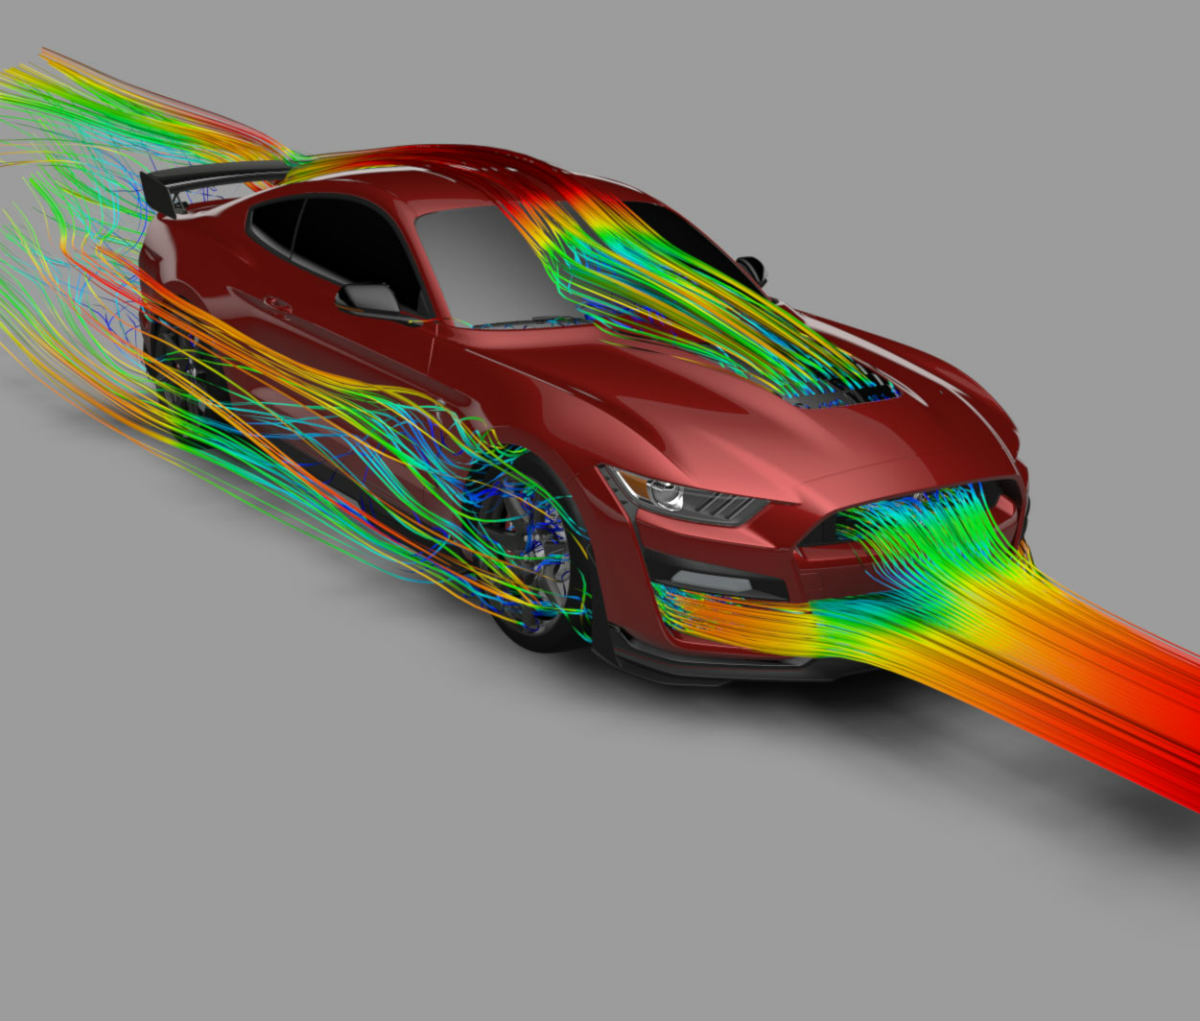 computer rendering of the aerodynamics of a 2020 Ford Mustang Shelby GT500